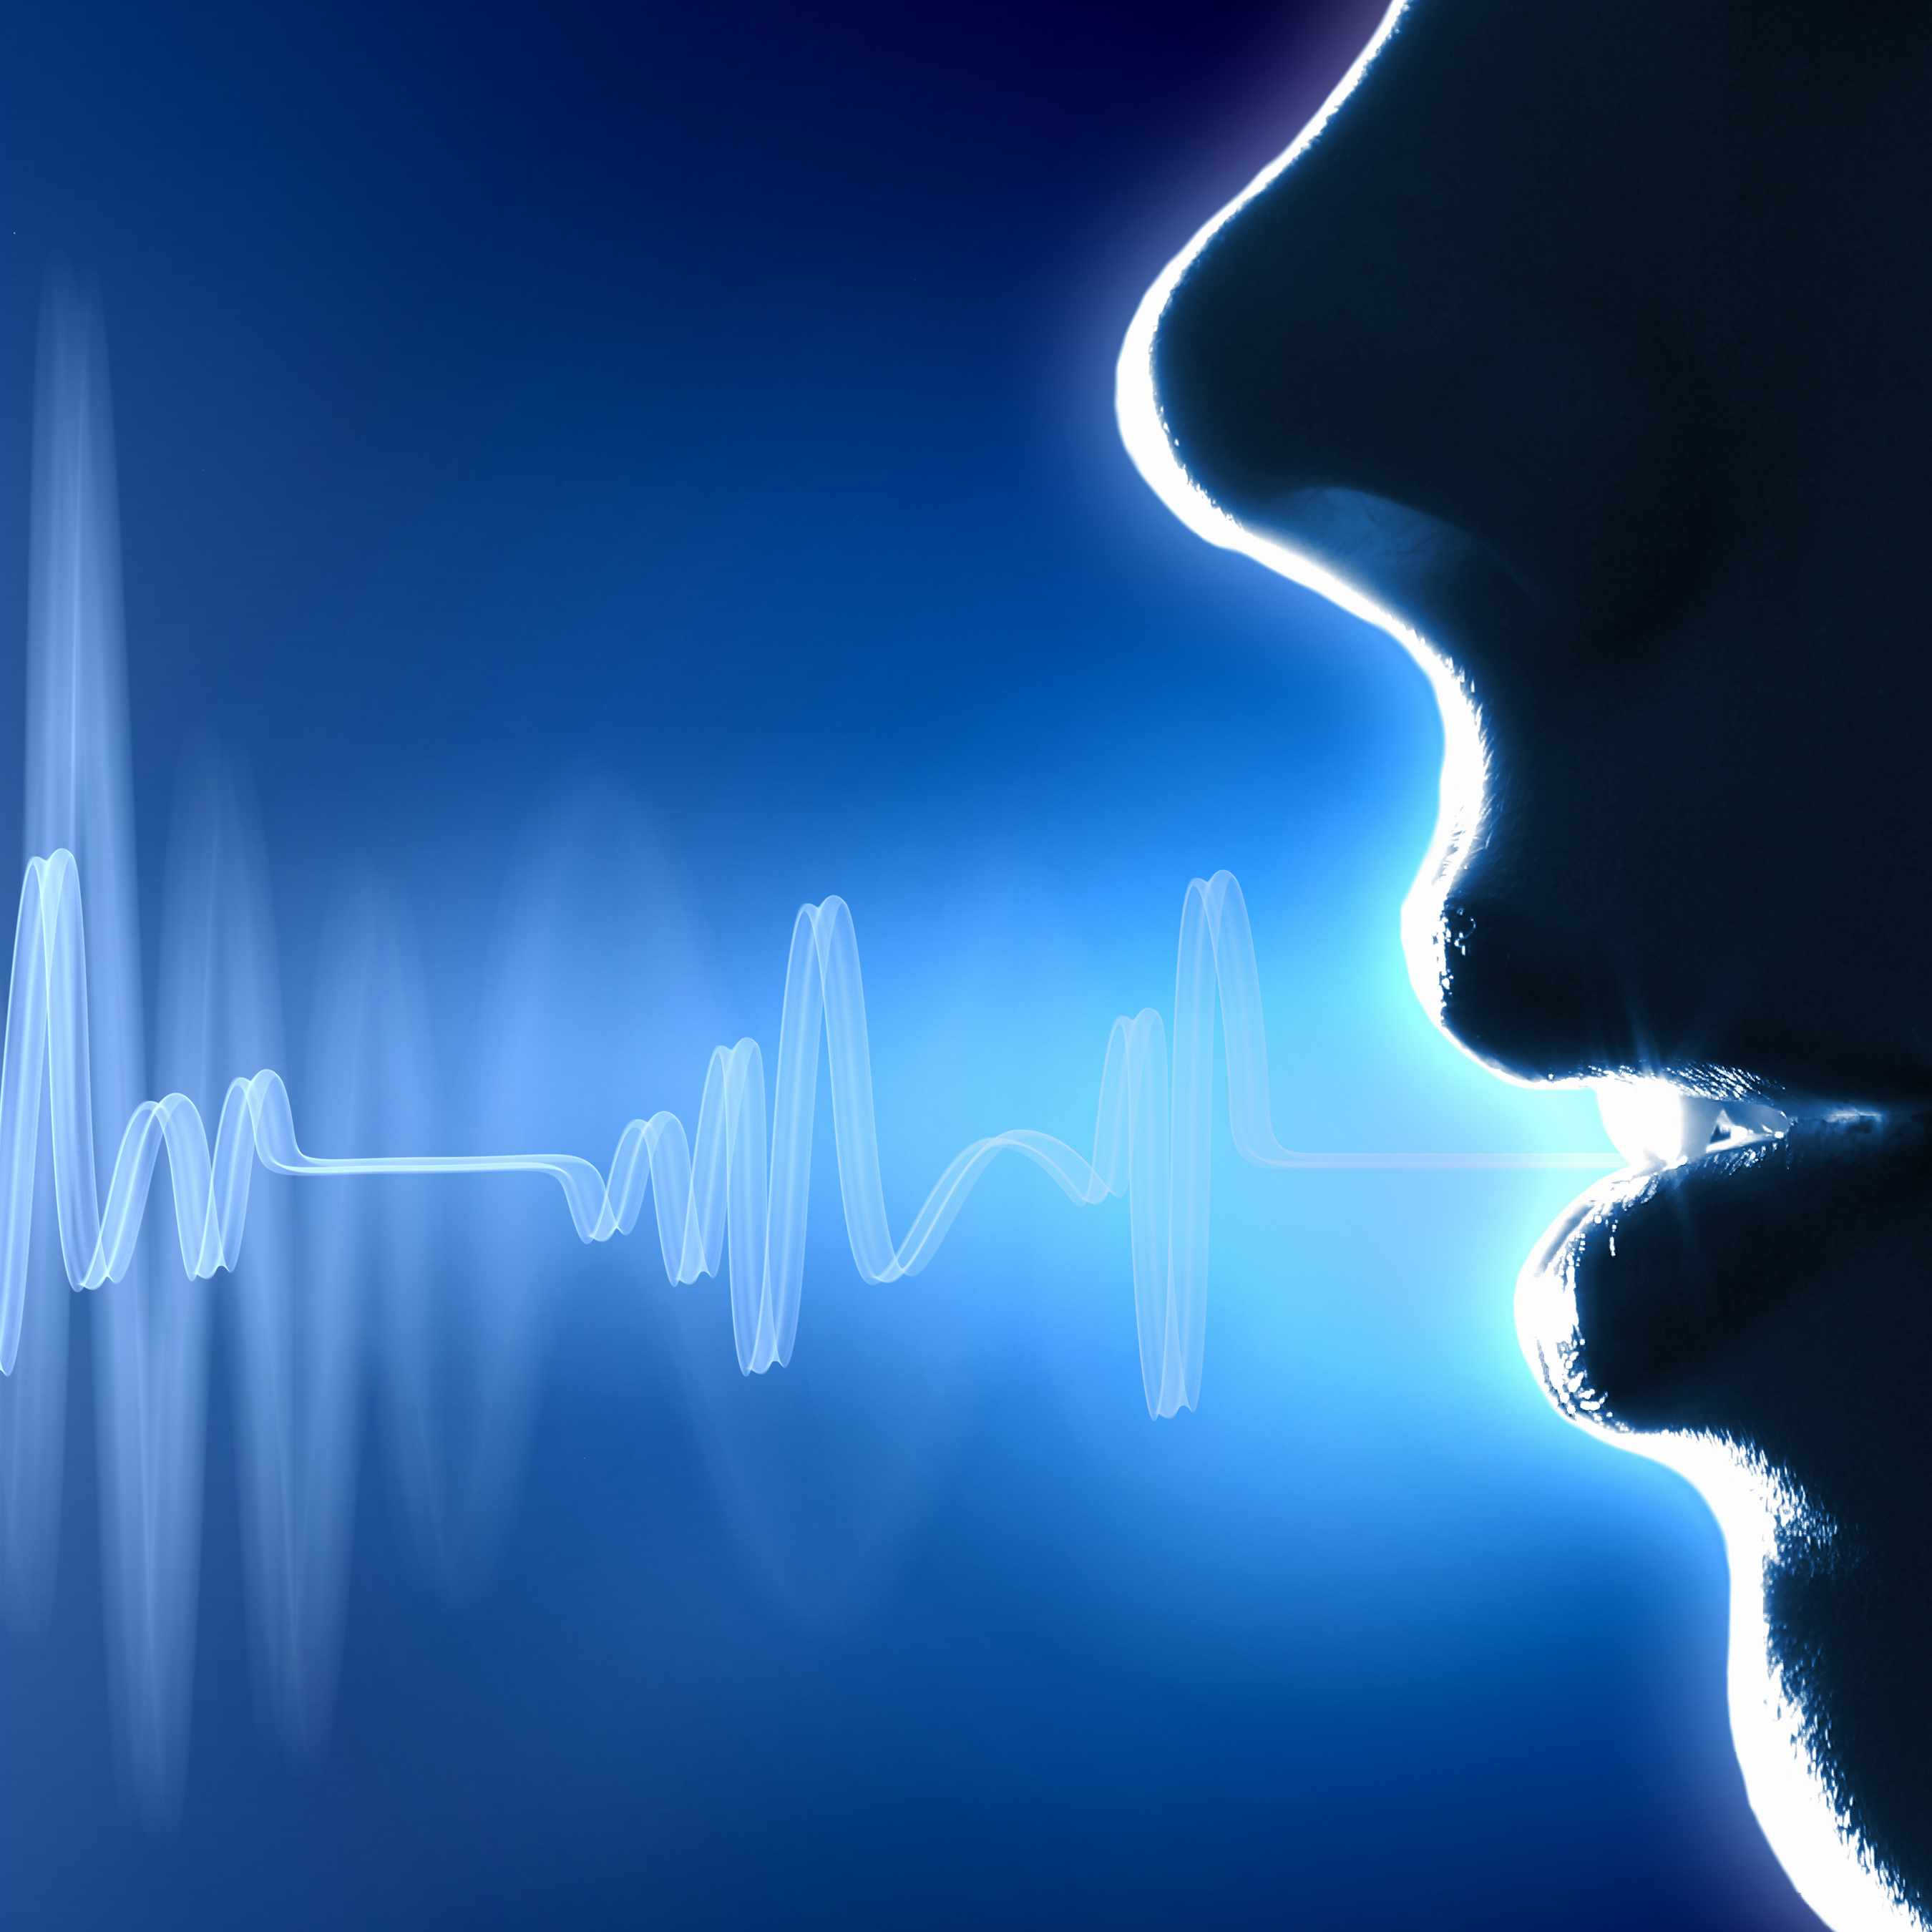 a mouth projecting sound waves